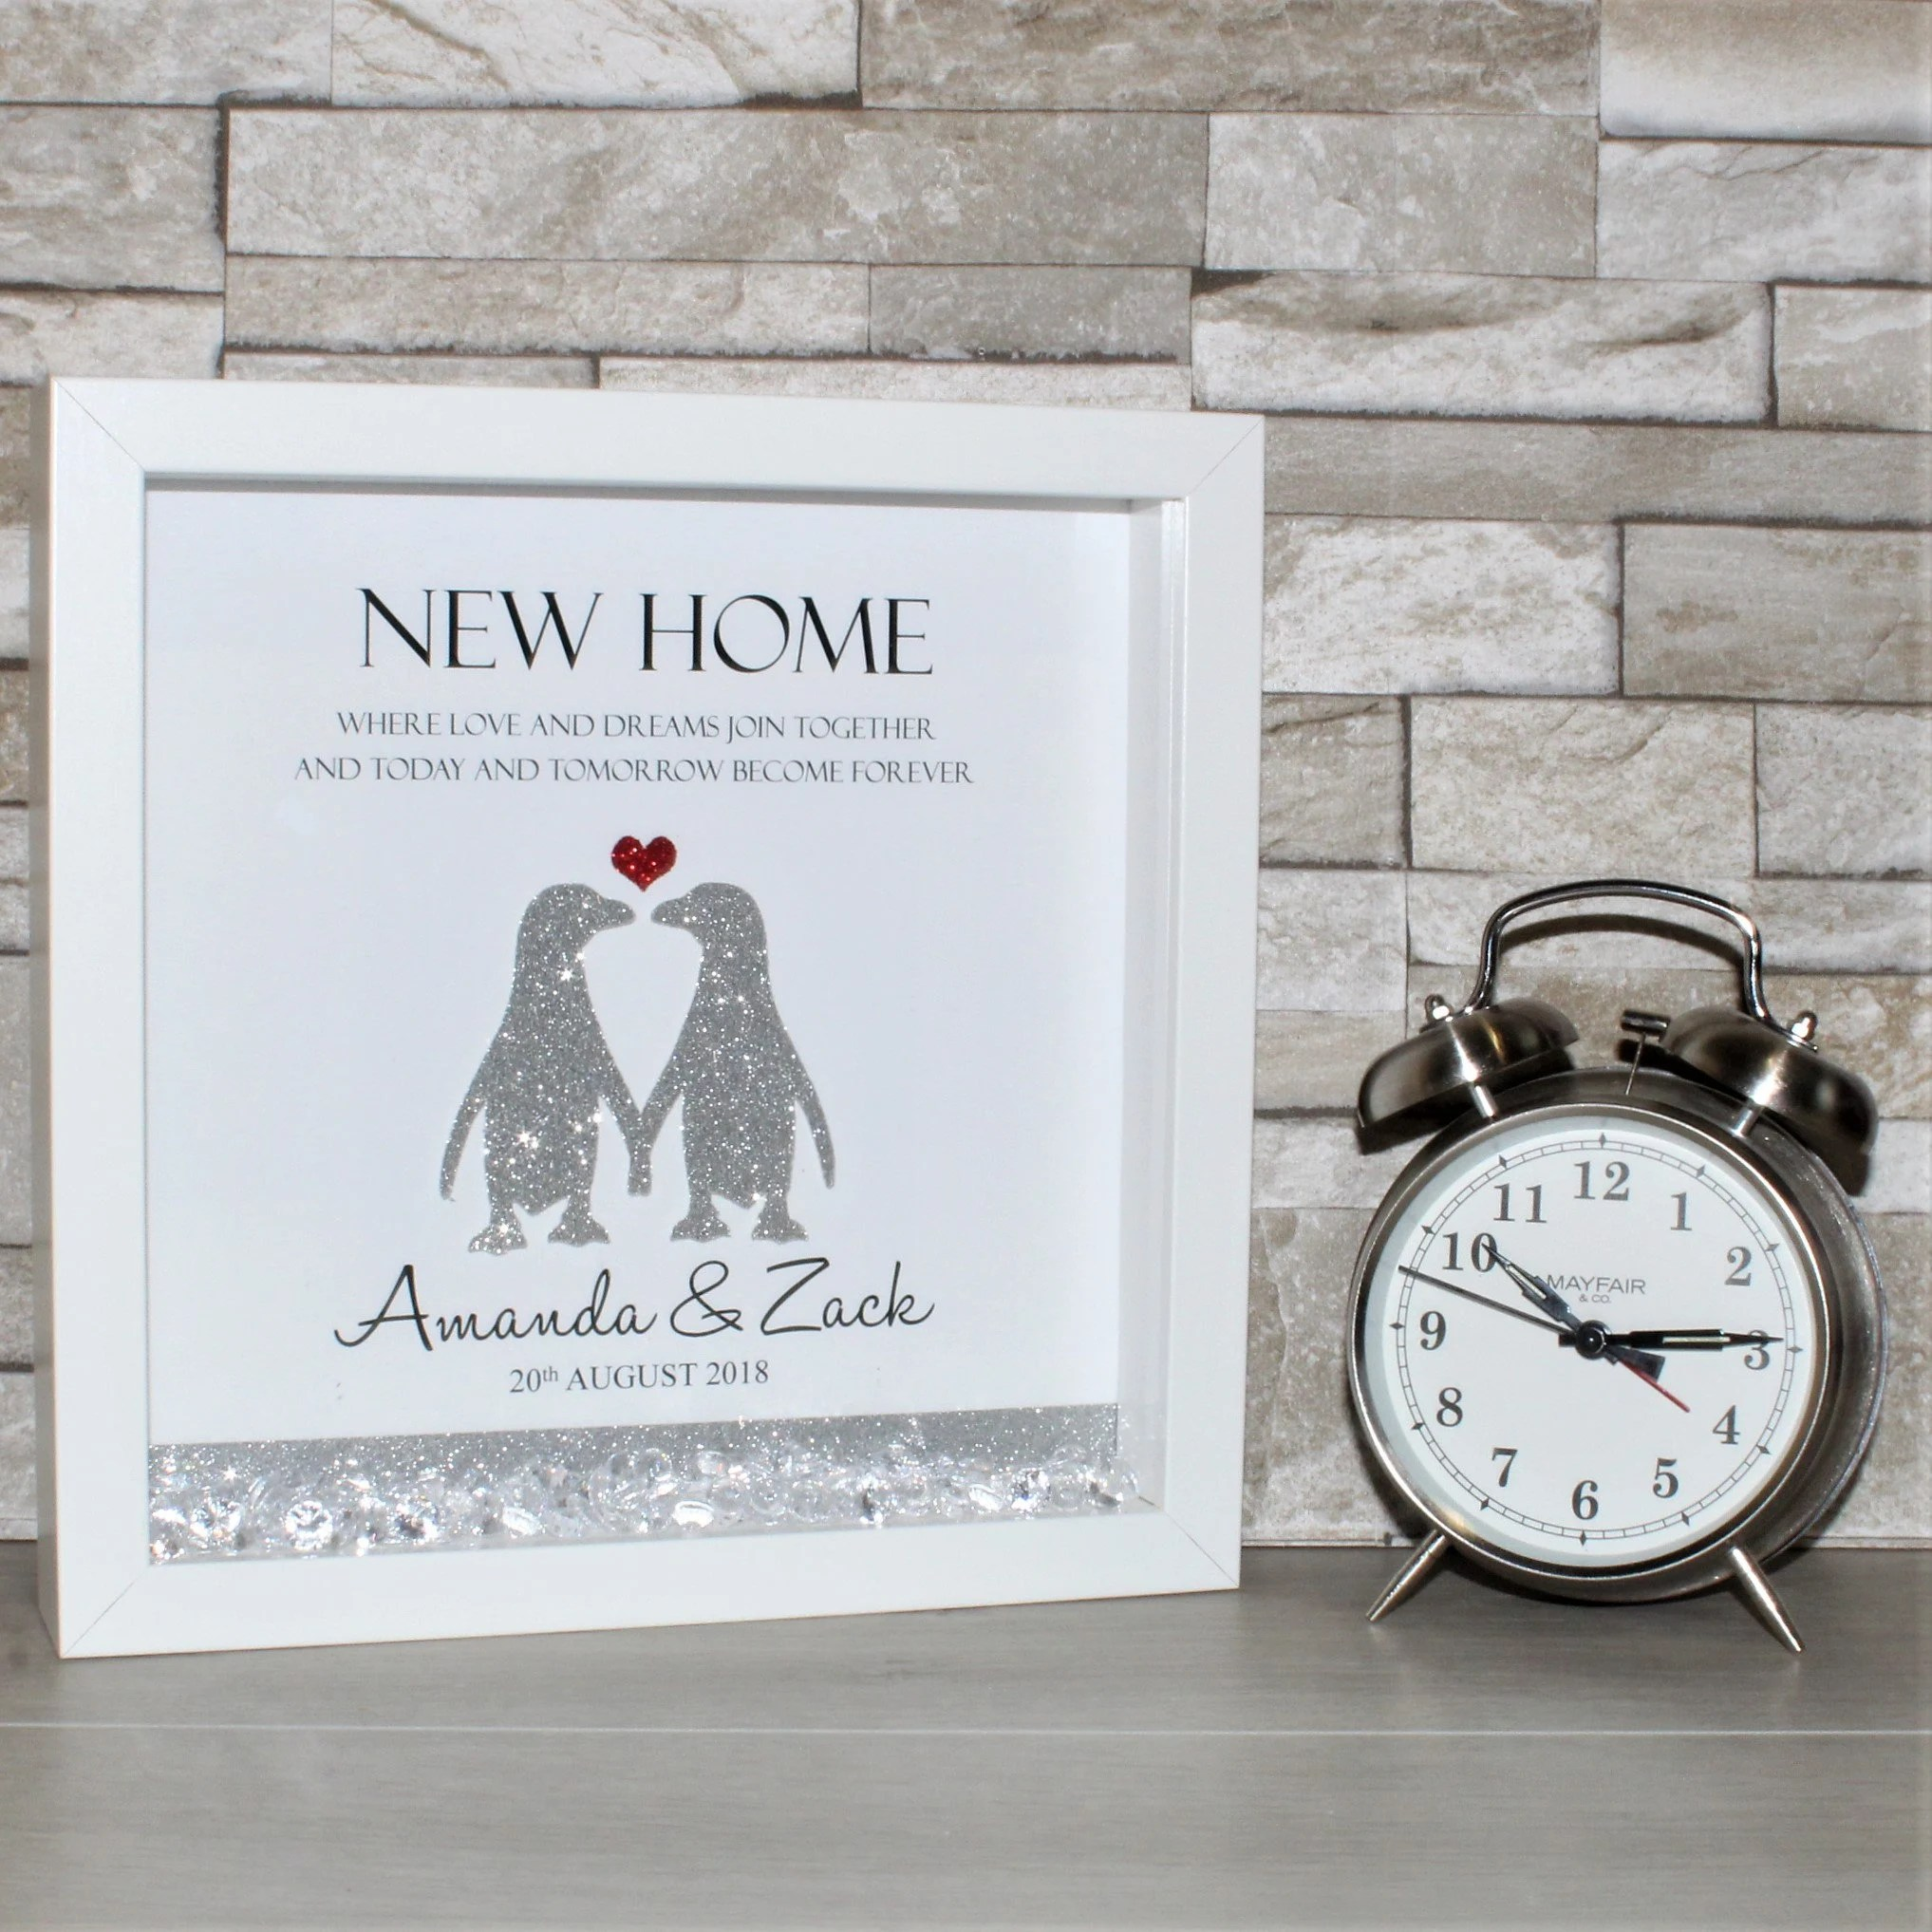 Personalised New Home Gifts Personalised New Home Frame First Home Gift New House Gift New Home Box Frame New Home Frame Housewarming Gift Personalised First Home